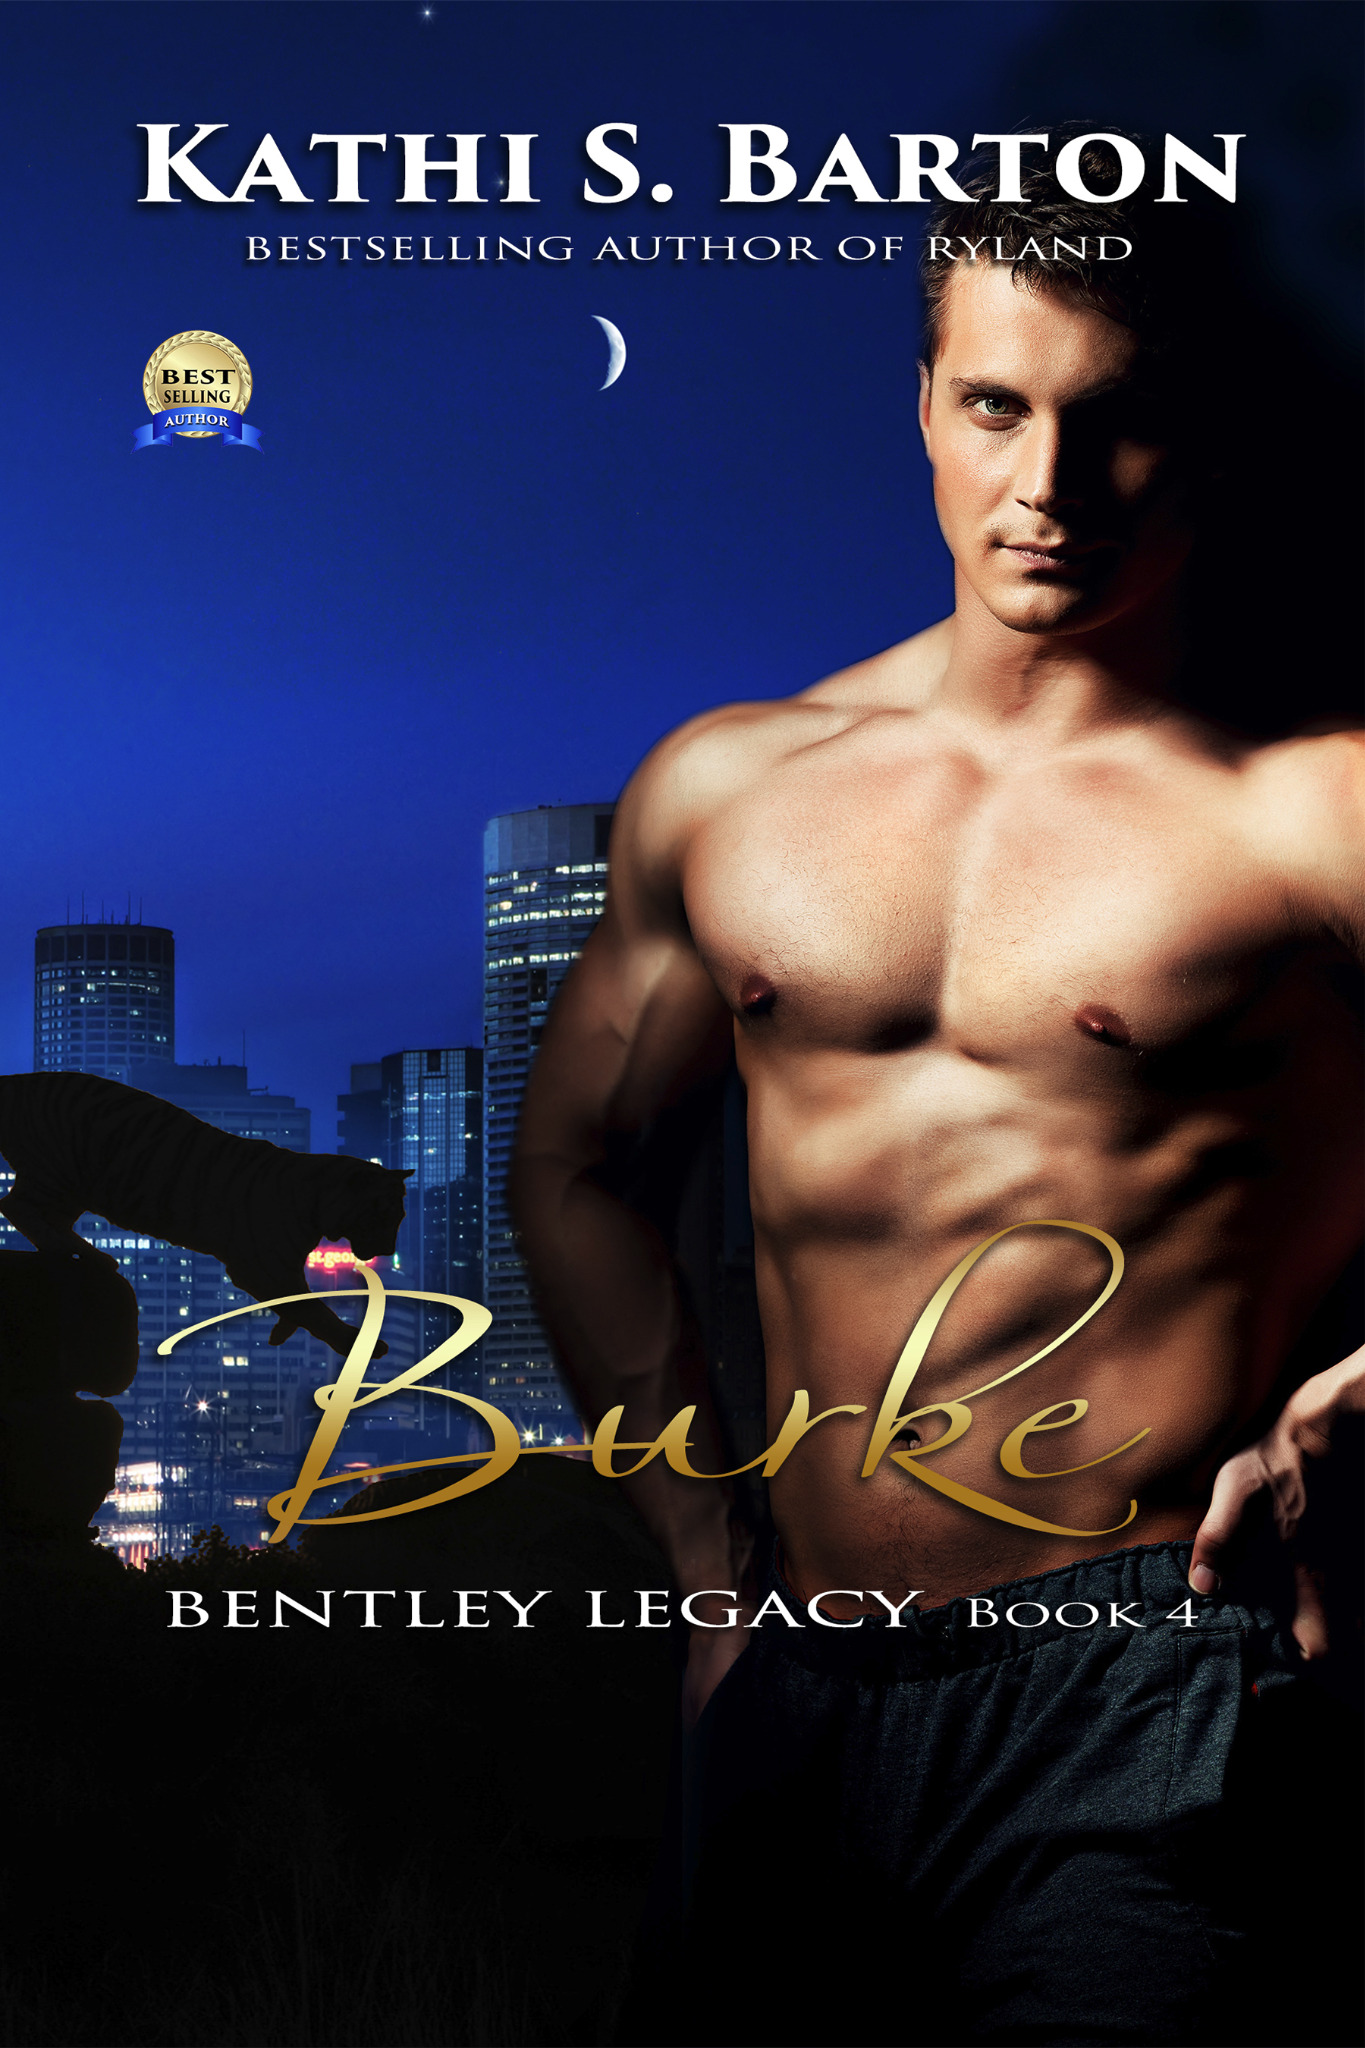 Burke - Bentley Legacy Book 4